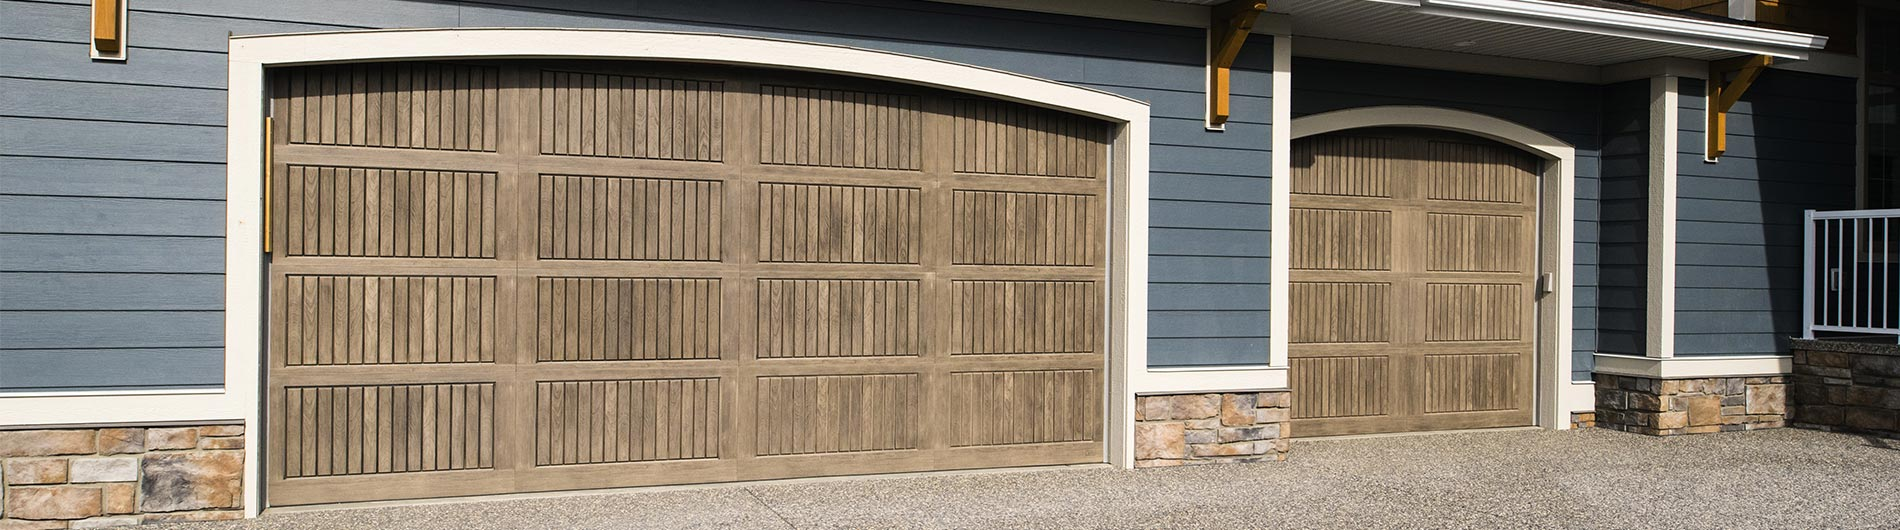 Dalton doors 9800 fiberglass garage door for Wayne dalton garage doors